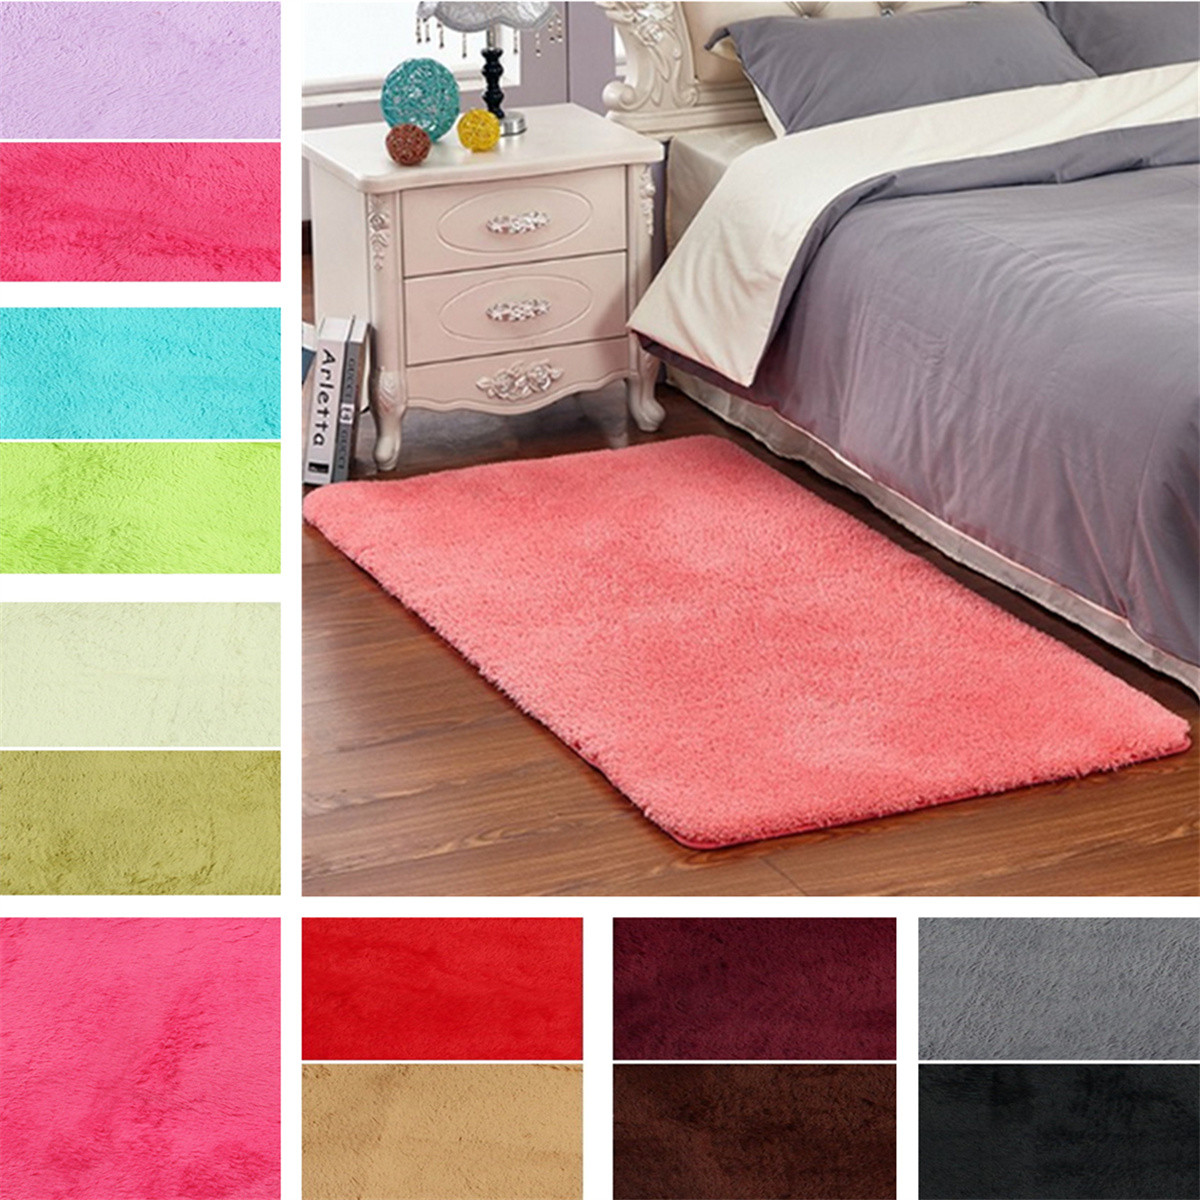 fluffy rectangle floor rug antiskid shaggy area rug dining room carpet yoga bedroom floor